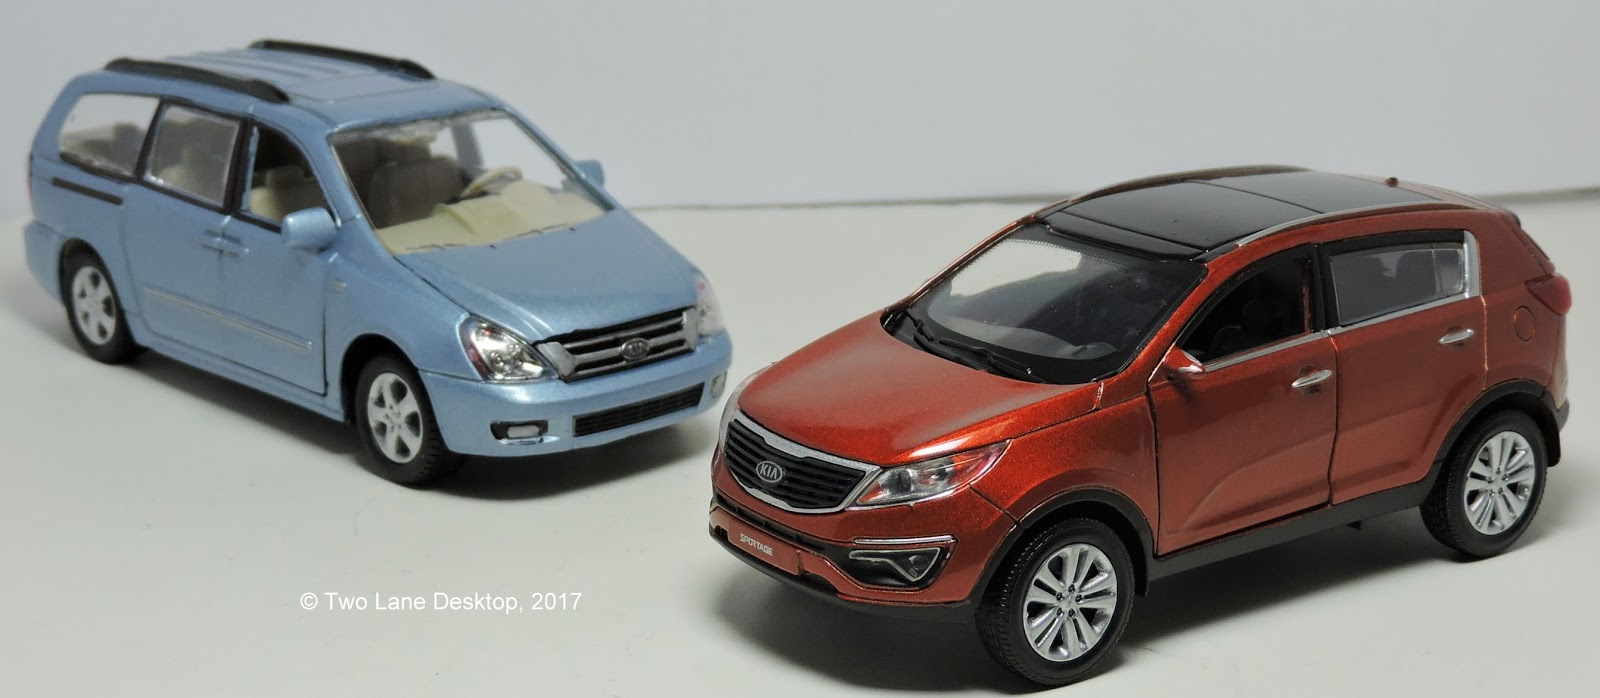 Two Lane Desktop: 1:43 scale 2013 Kia Sportage R and Kia Grand Carnival (Sedona)